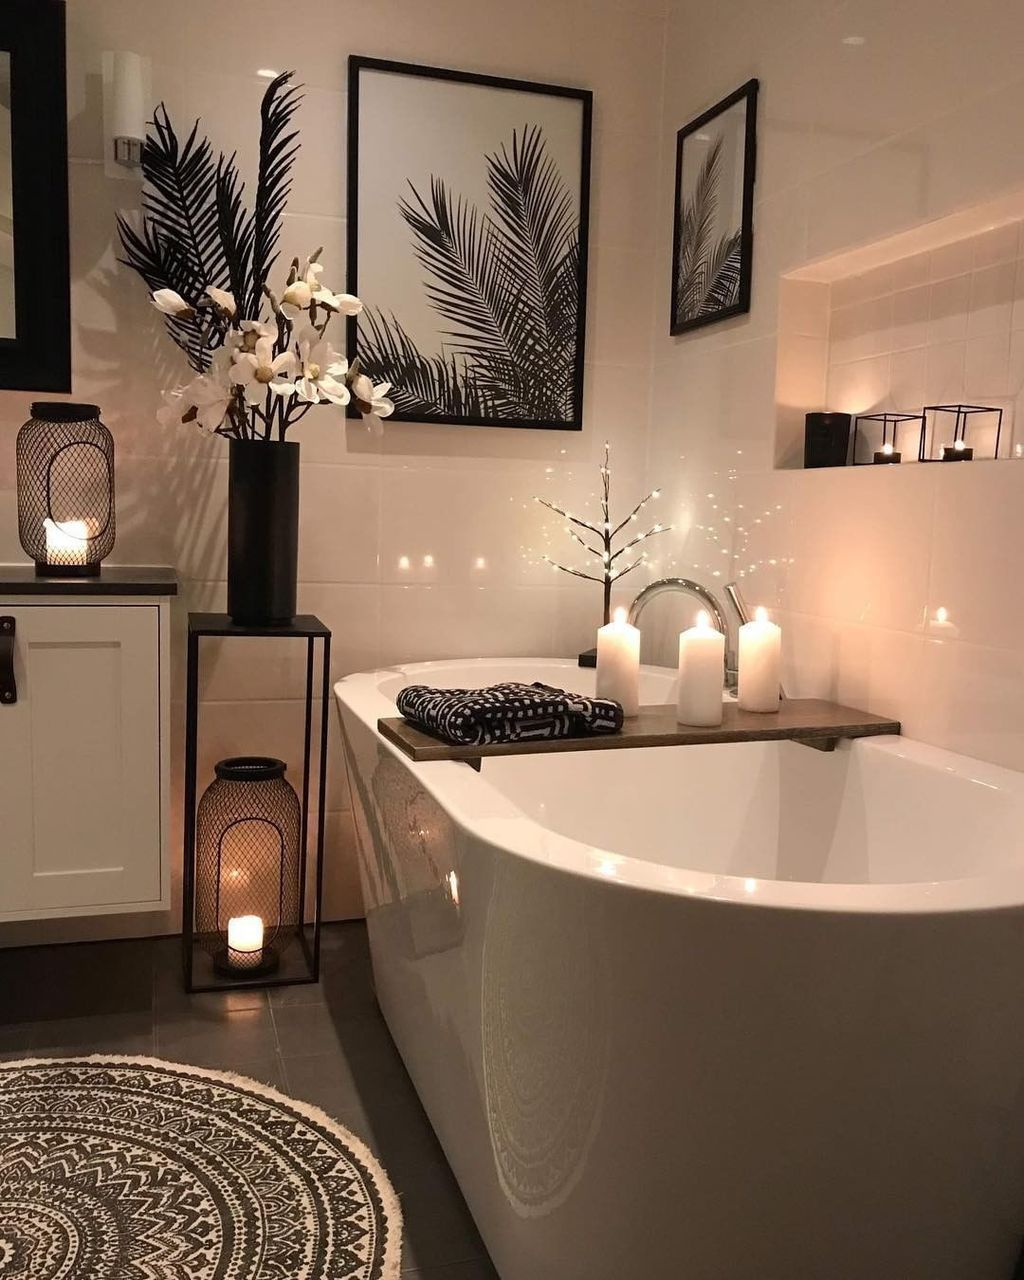 The Best Winter Bathroom Decor Ideas 22